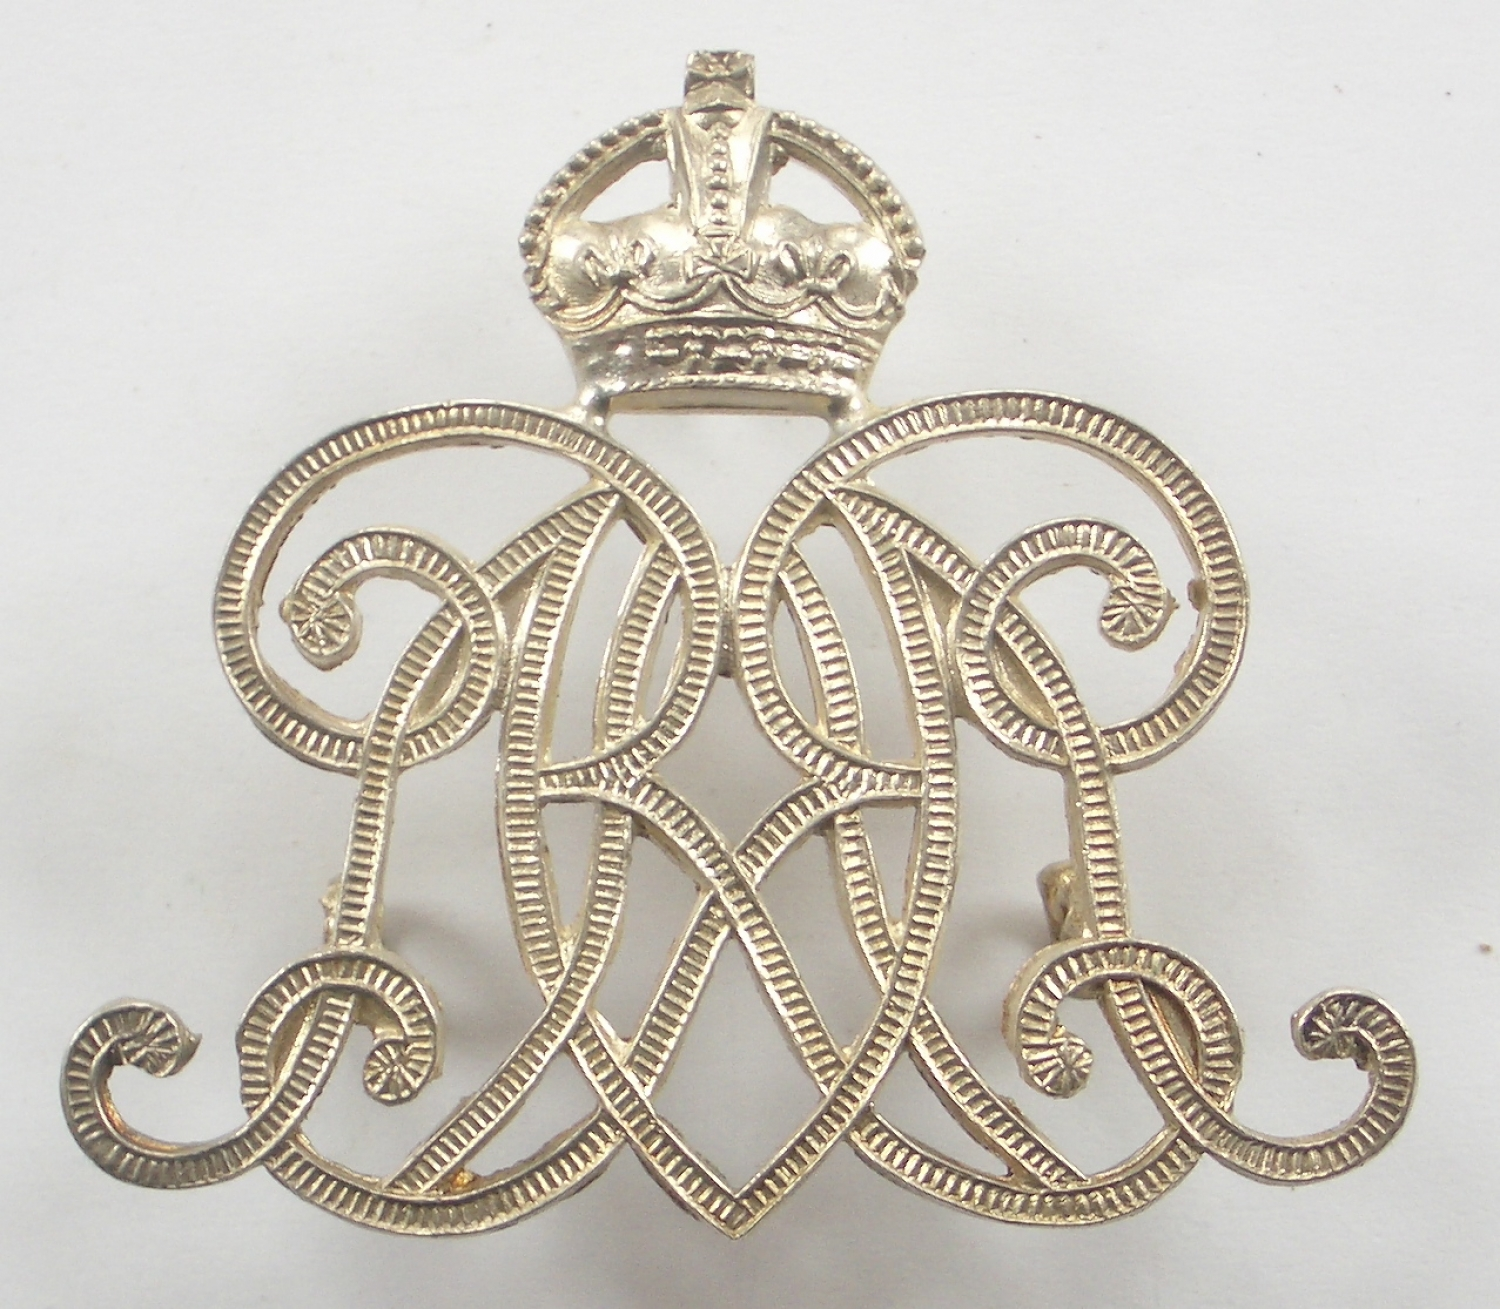 9th Lancer's NCO's silvered arm badge